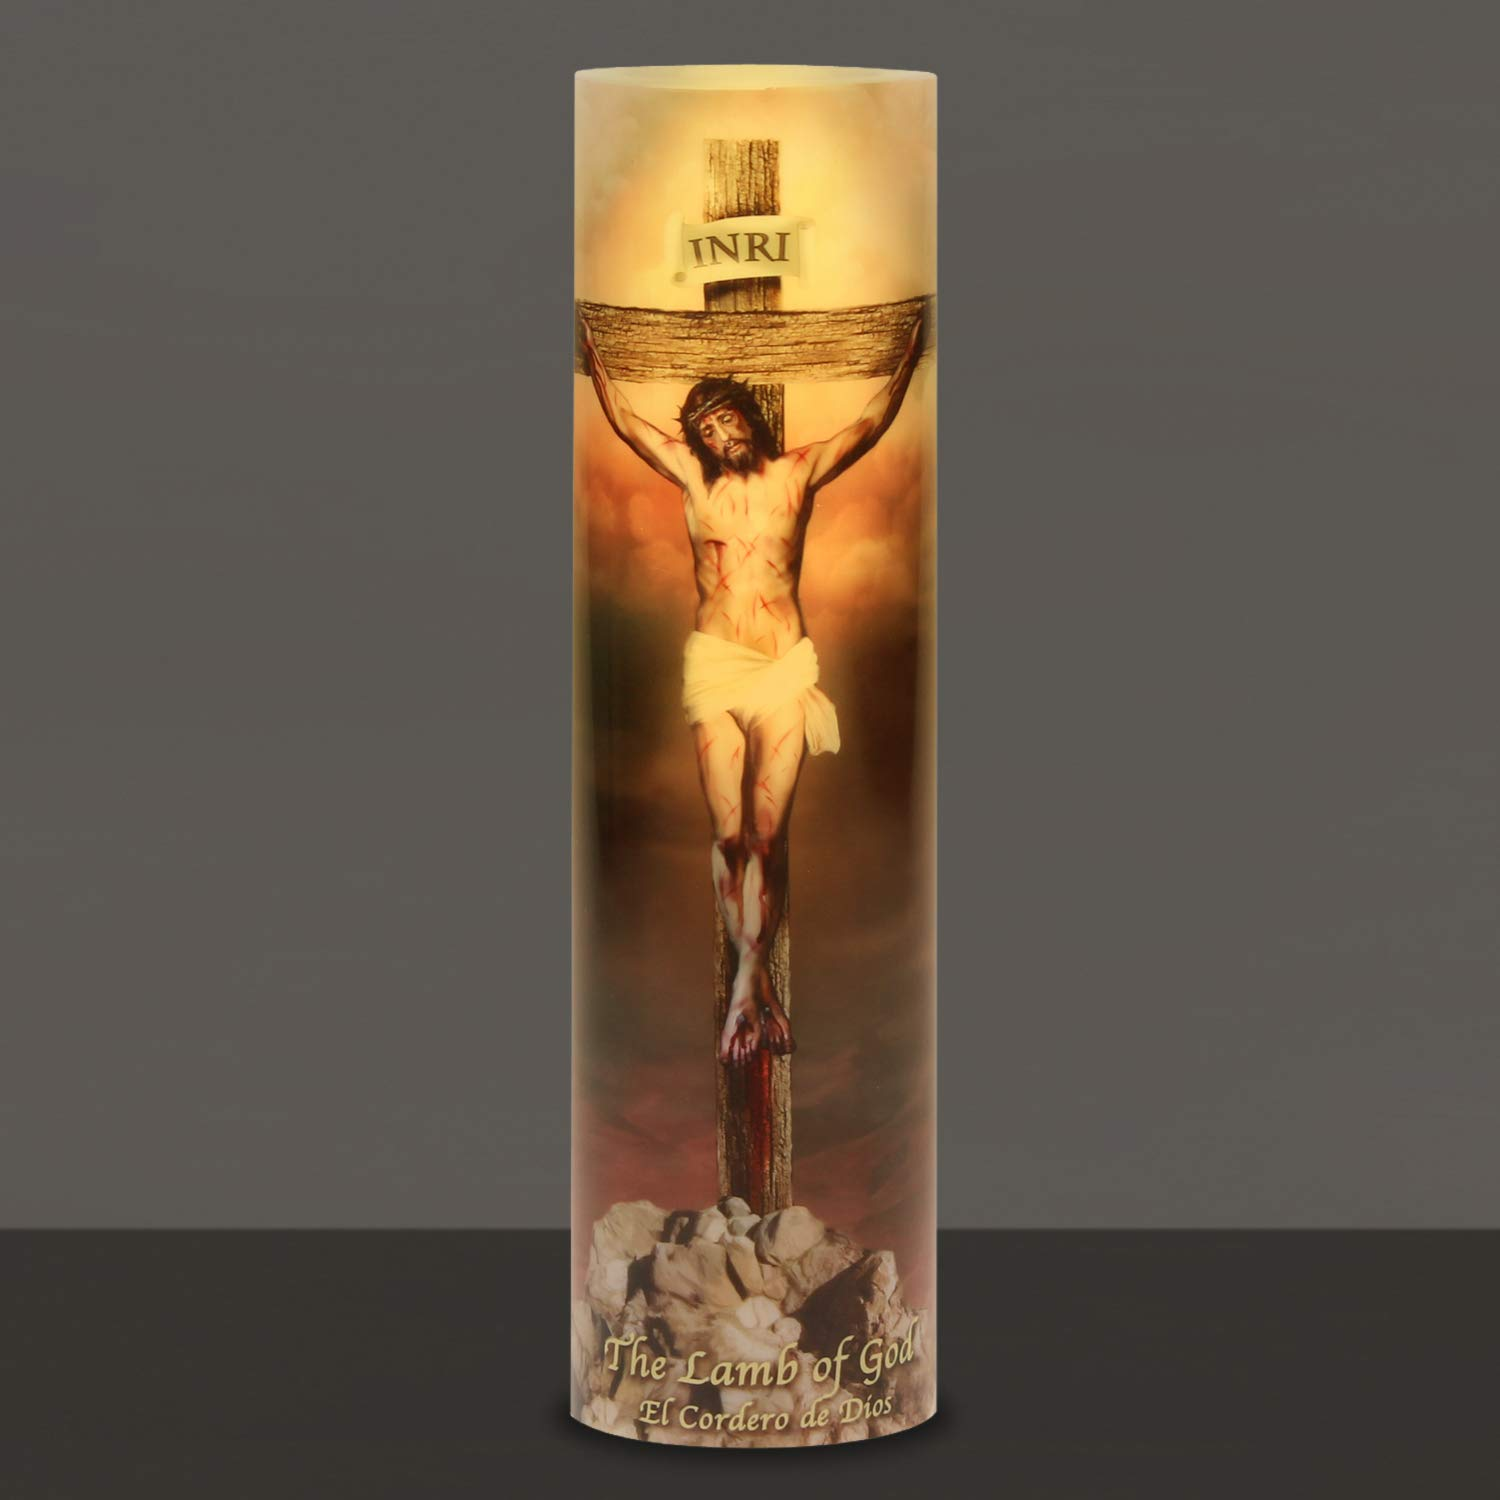 The Lamb of God, LED Flameless Devotion Prayer Candle, 6 Hour Timer, Religious Gift The Saints Gift Collection C-8009